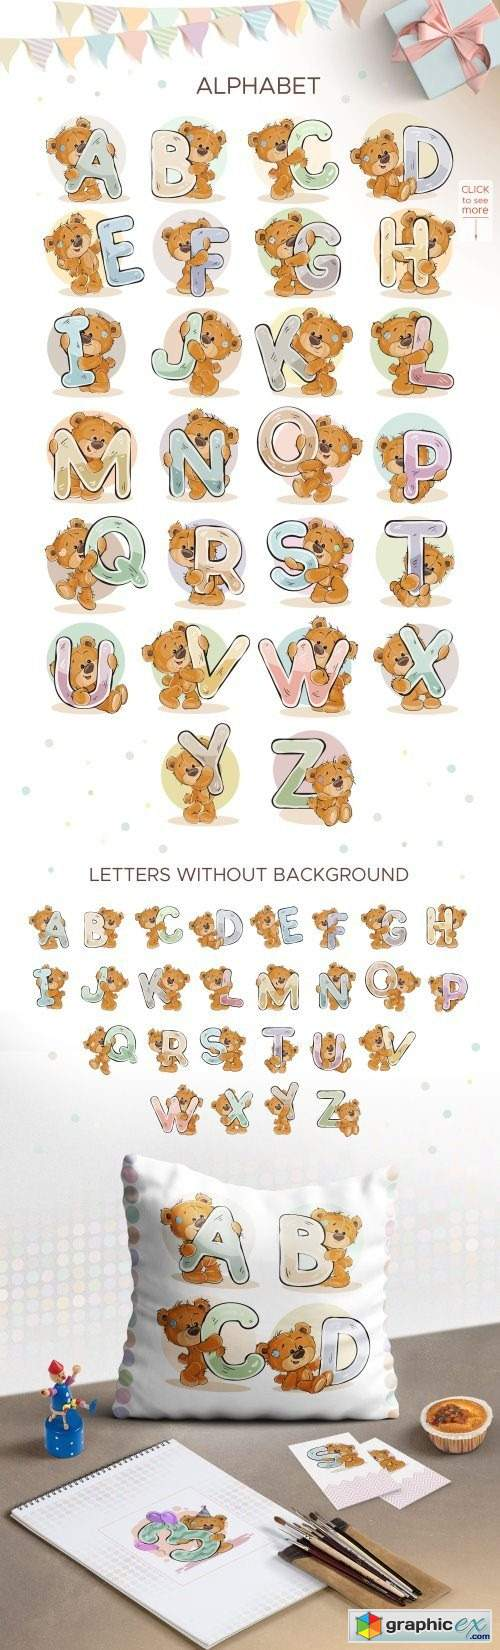 Kid's alphabet with cartoon bear